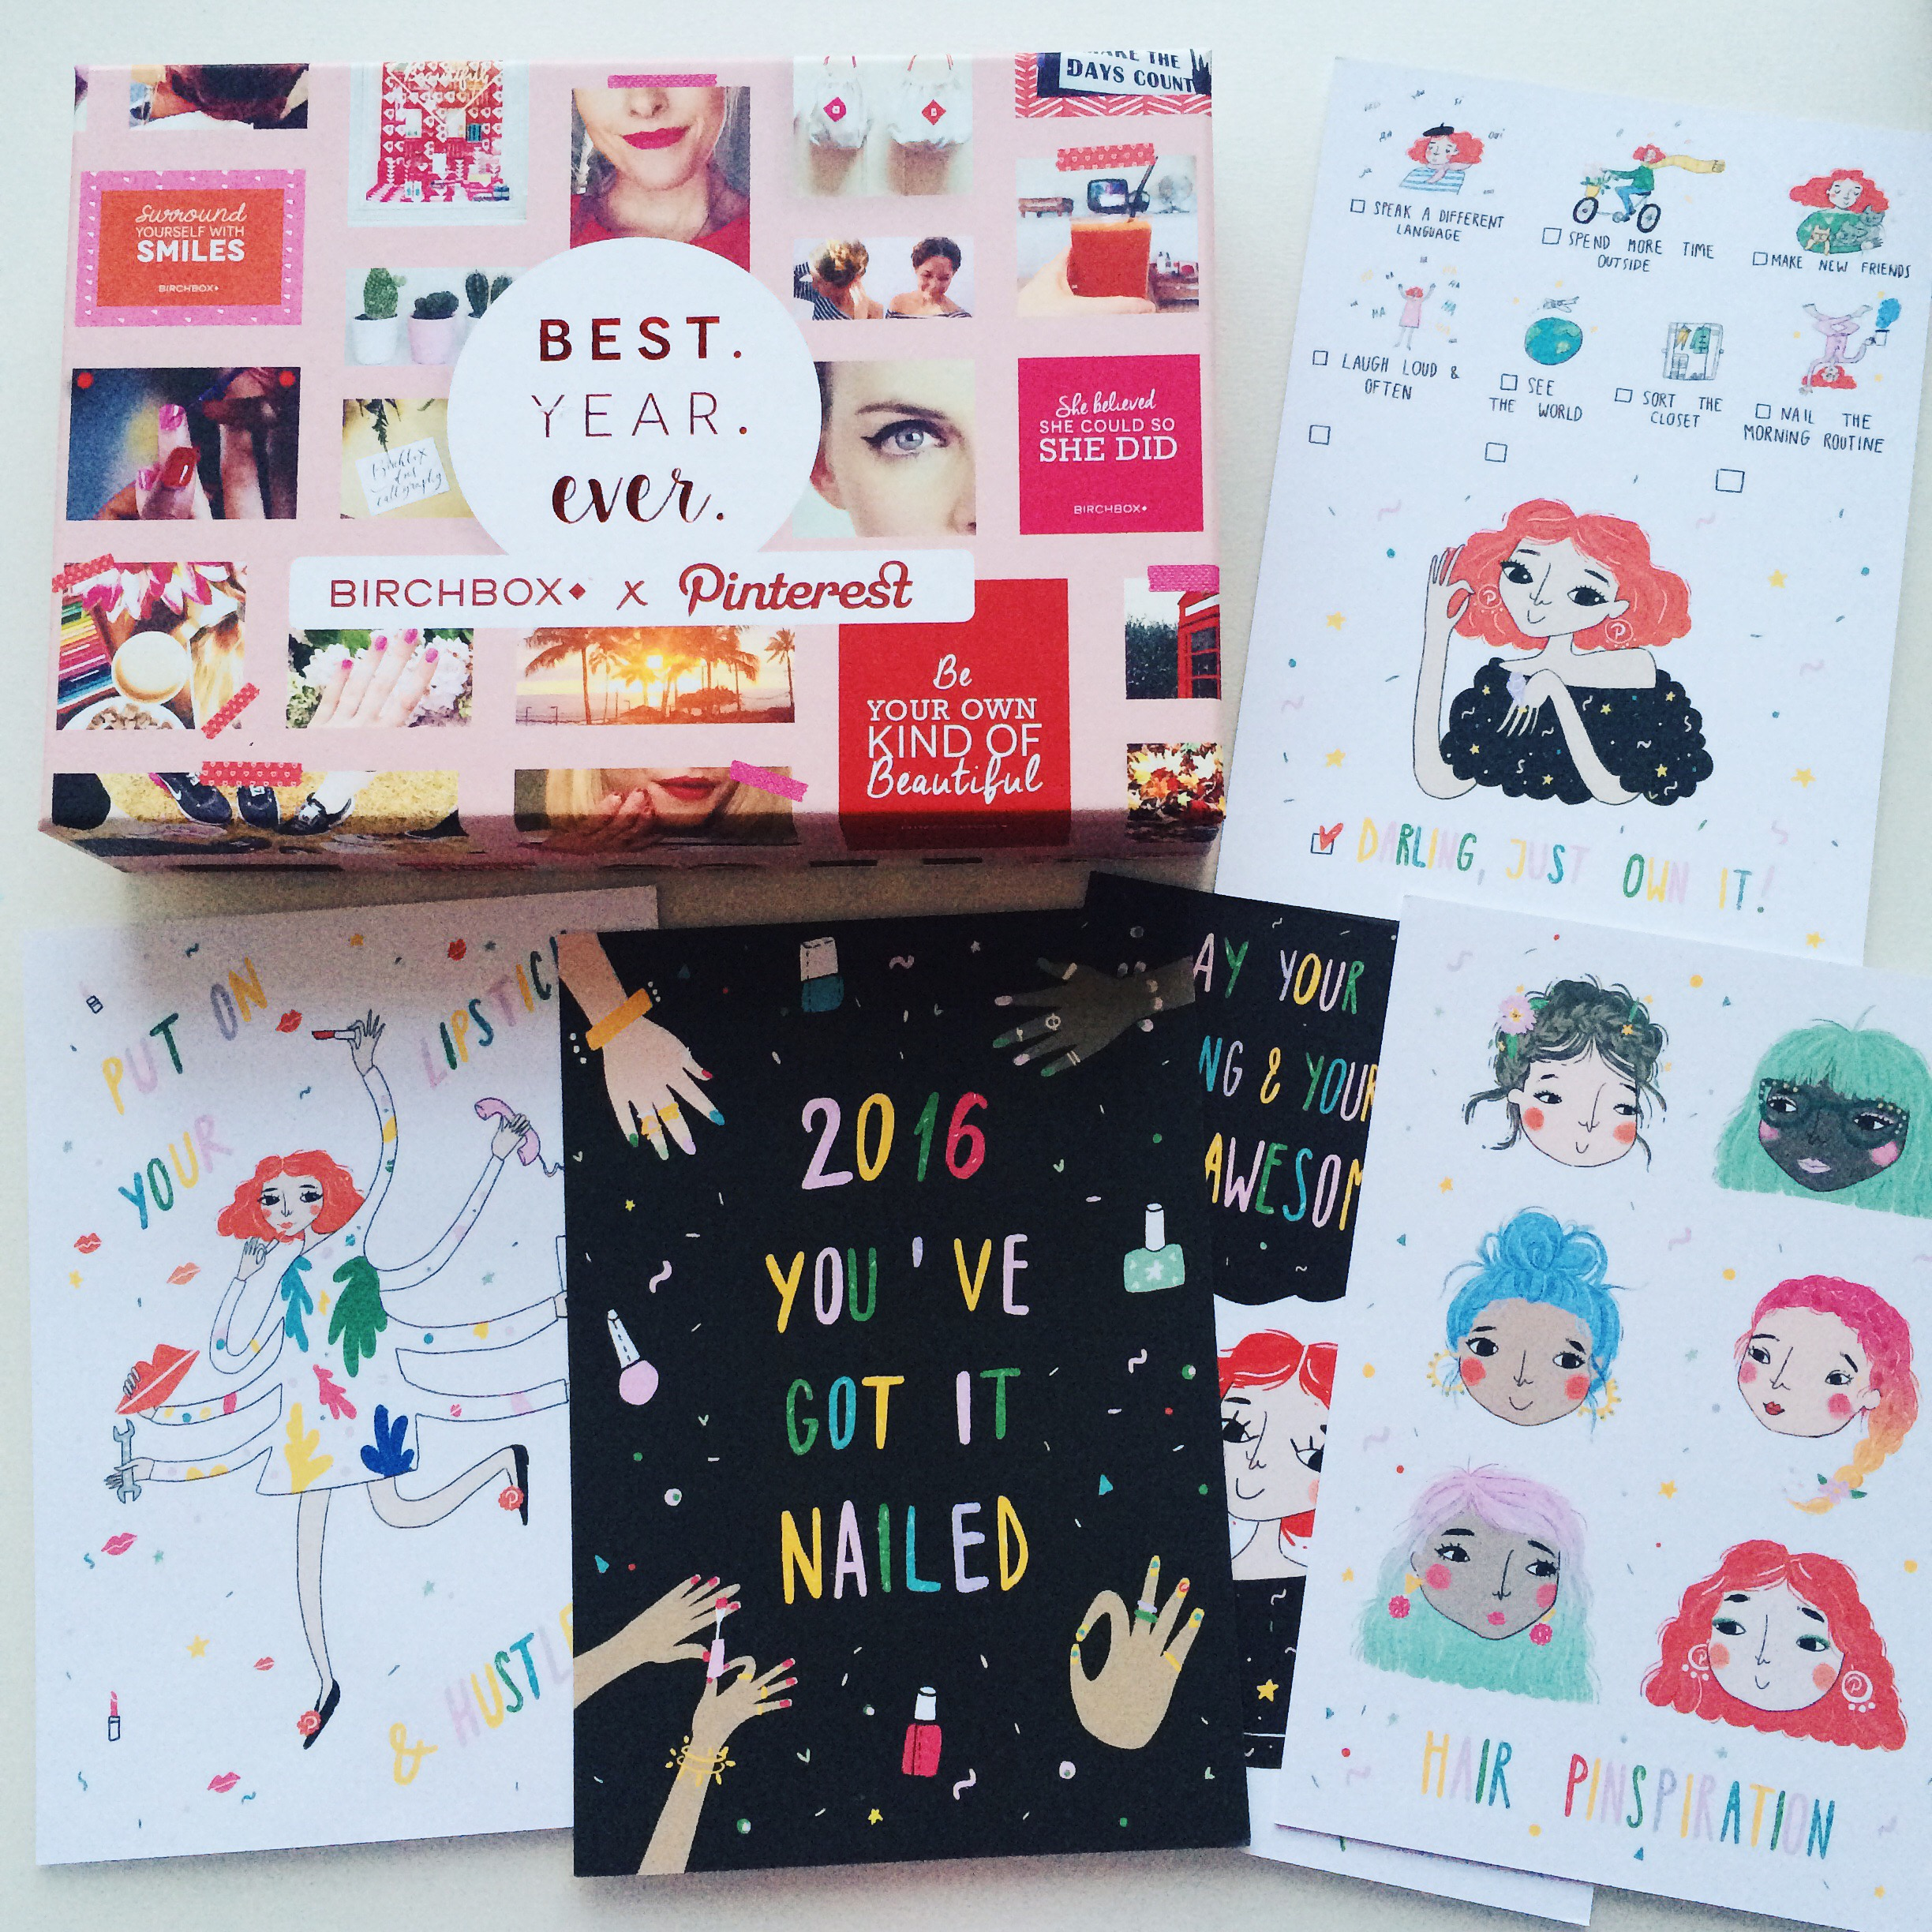 andsmile for birchbox x pinterest